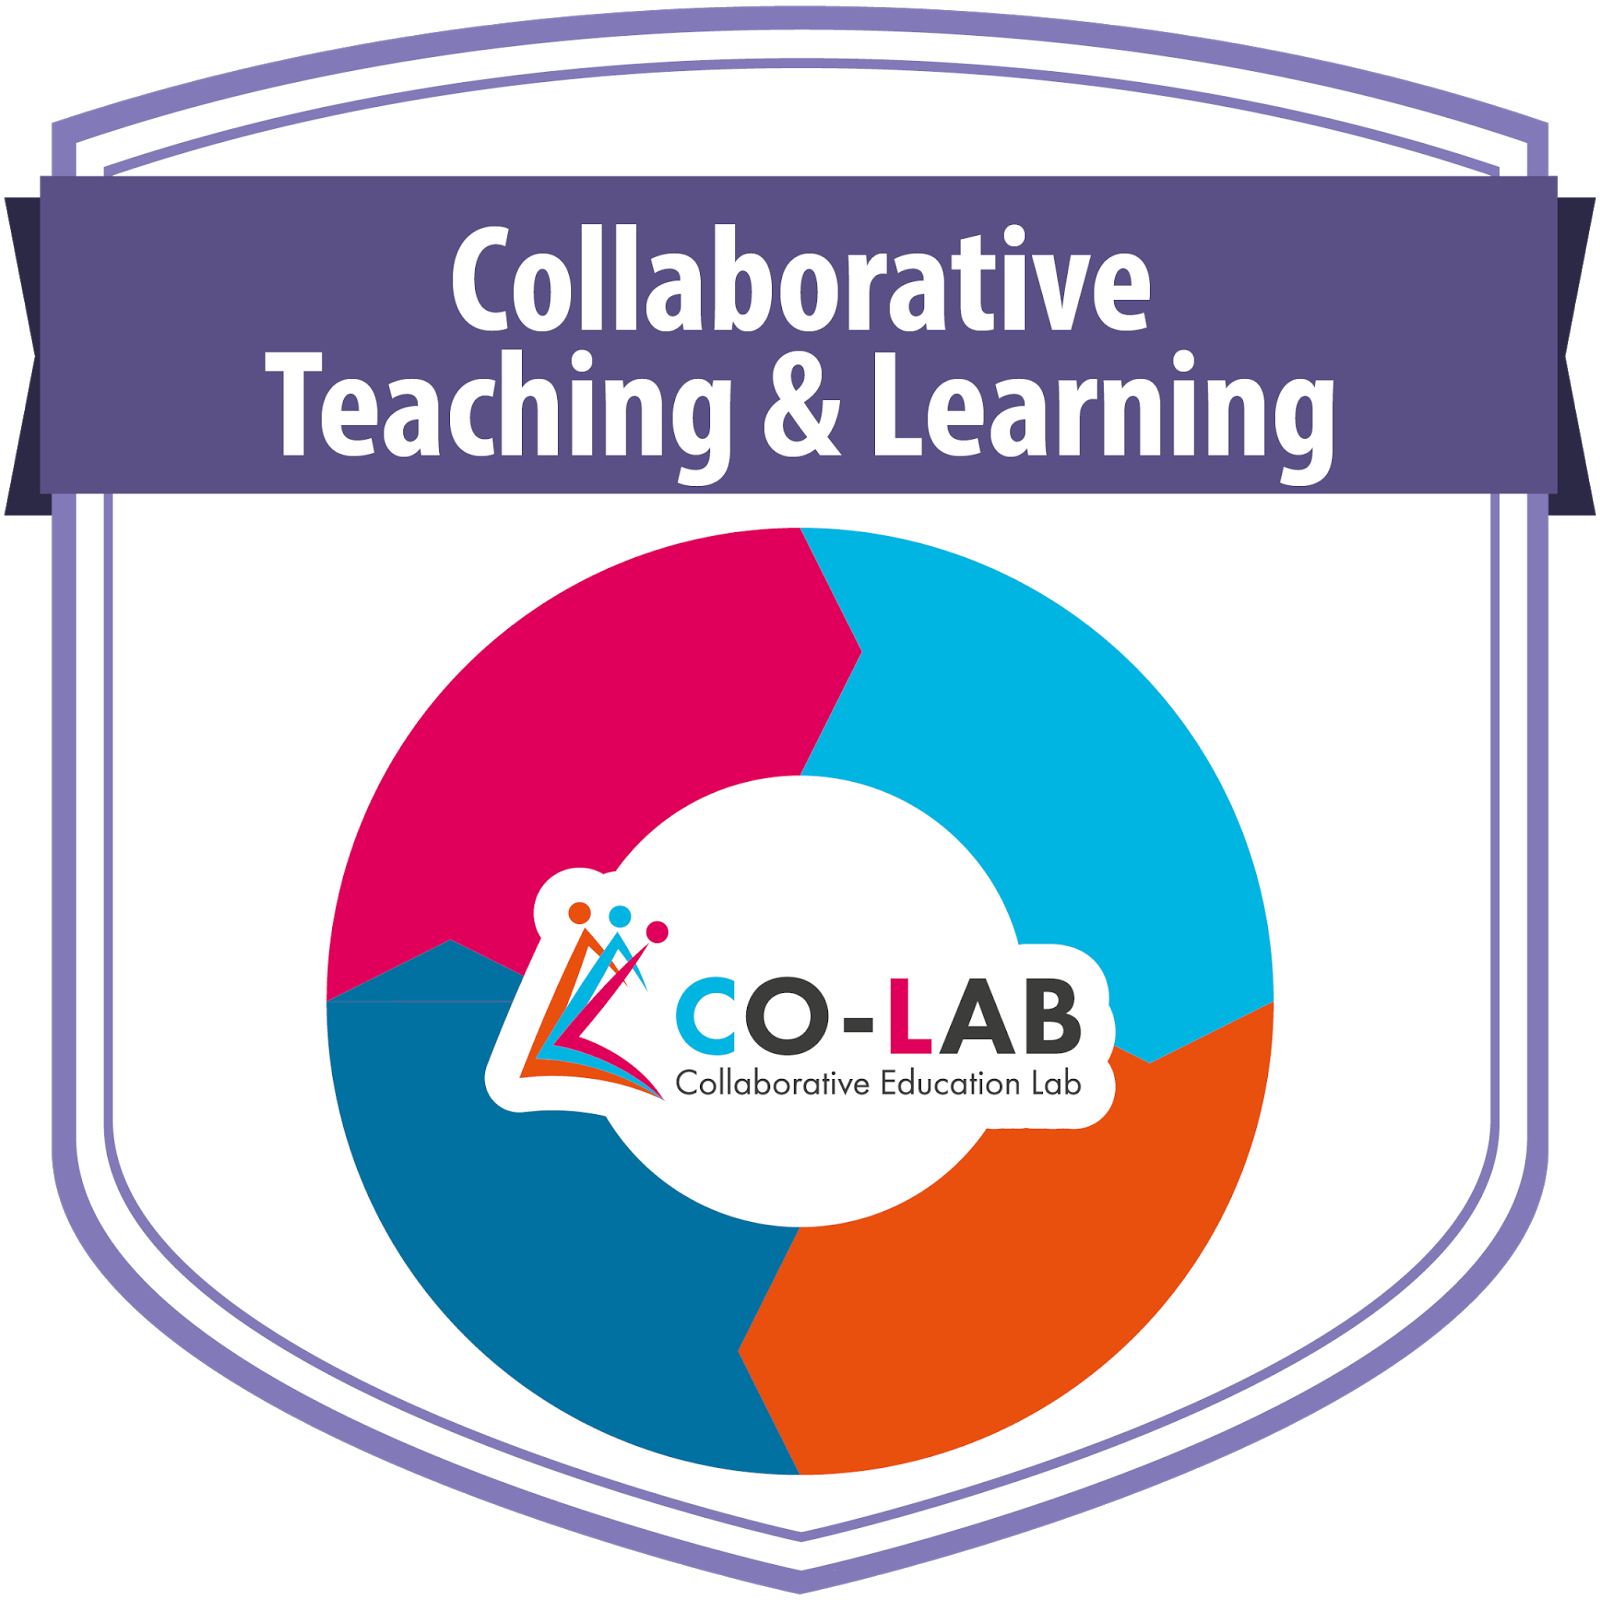 Collaborative Teaching : Discussing about education collaborative teaching and